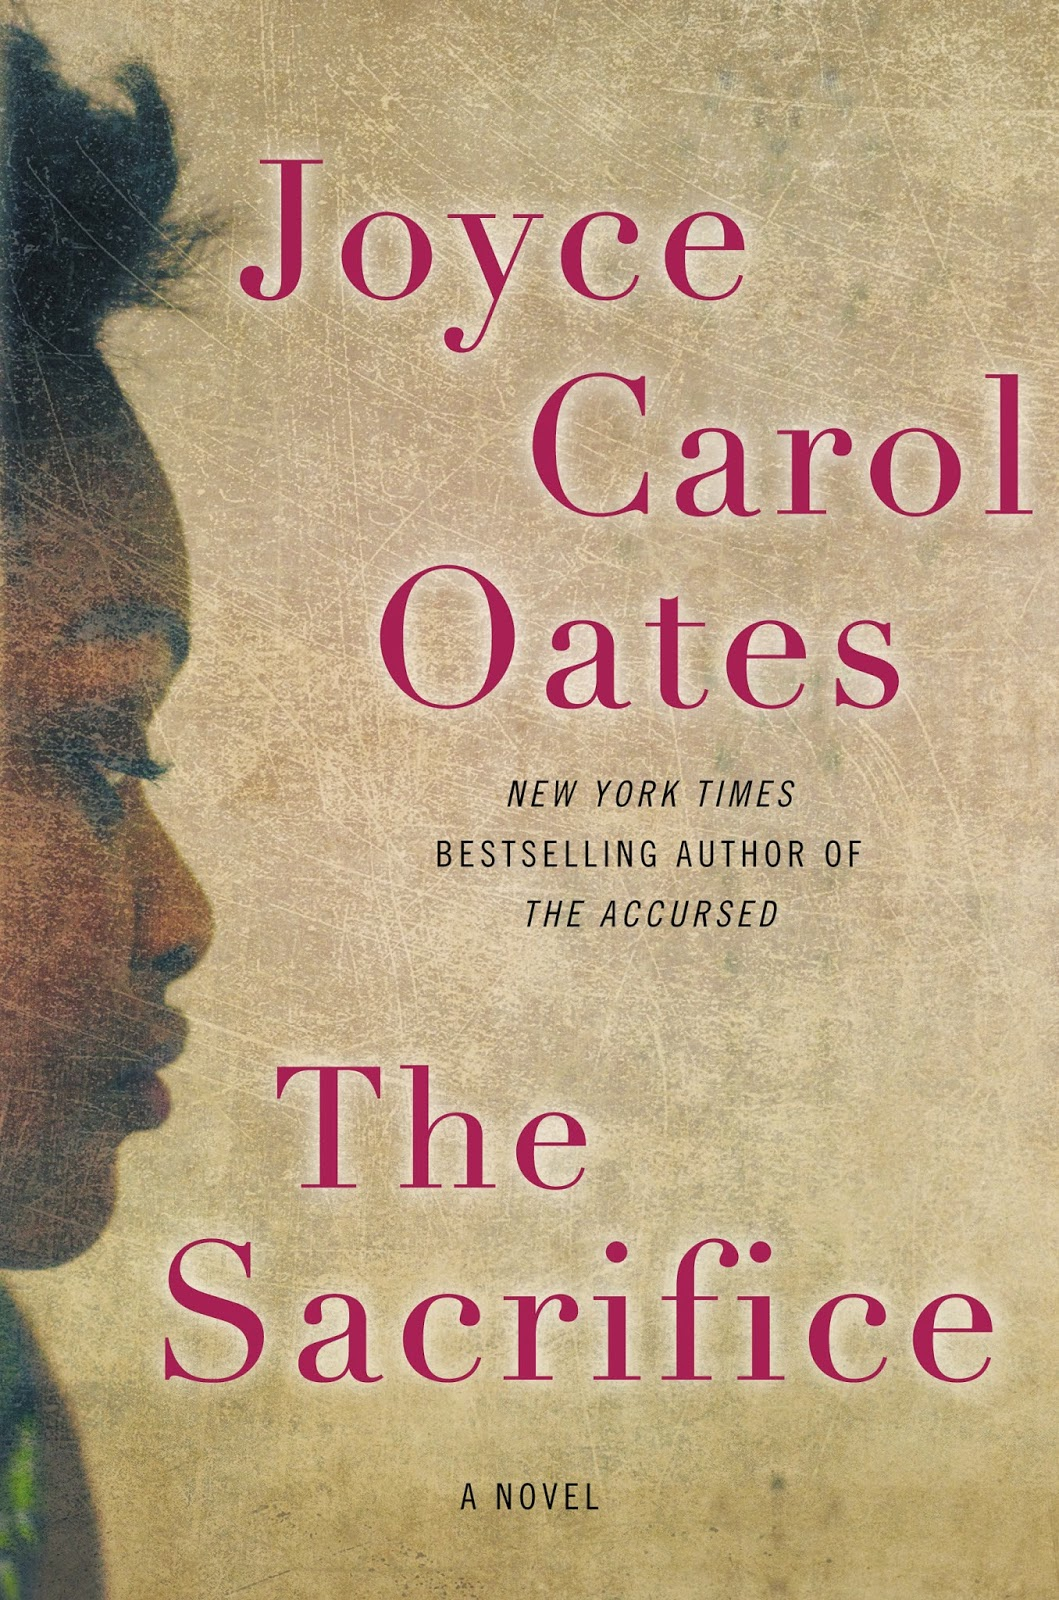 the great american essays oates Essays and criticism on joyce carol oates - oates, joyce carol (vol 2.